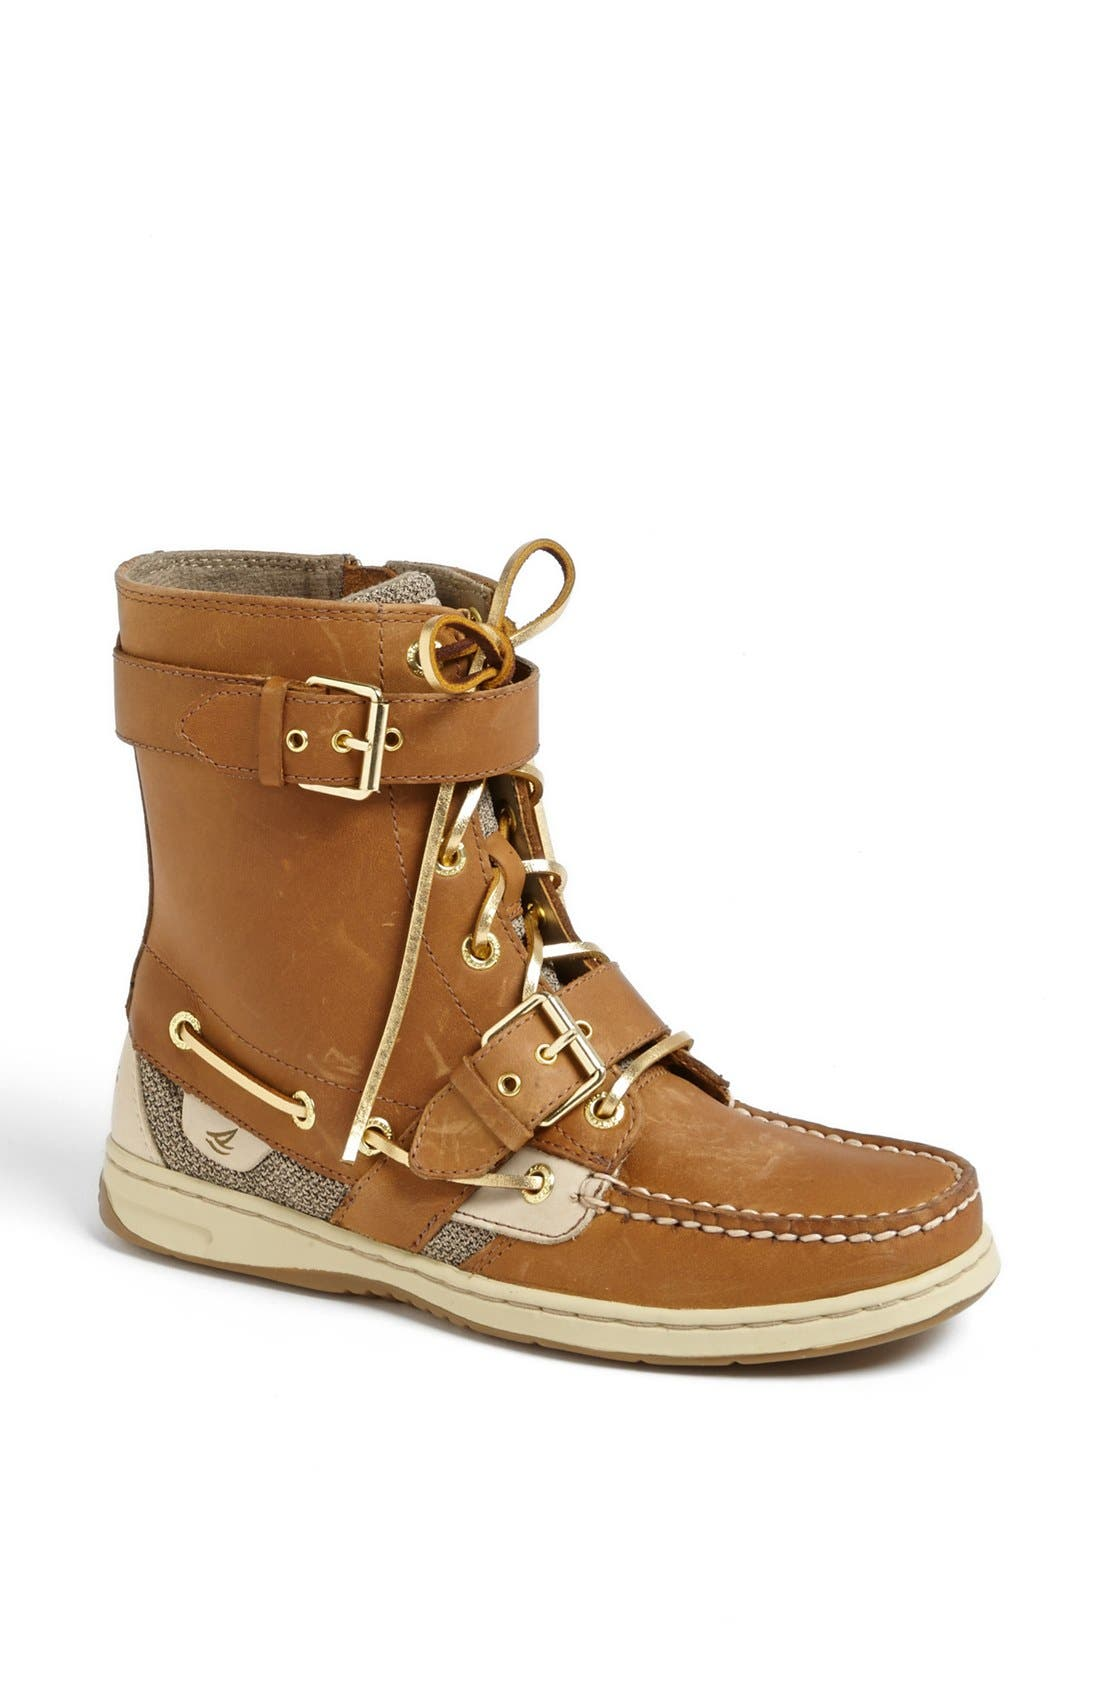 Alternate Image 1 Selected - Sperry Top-Sider® 'Huntley' Boot